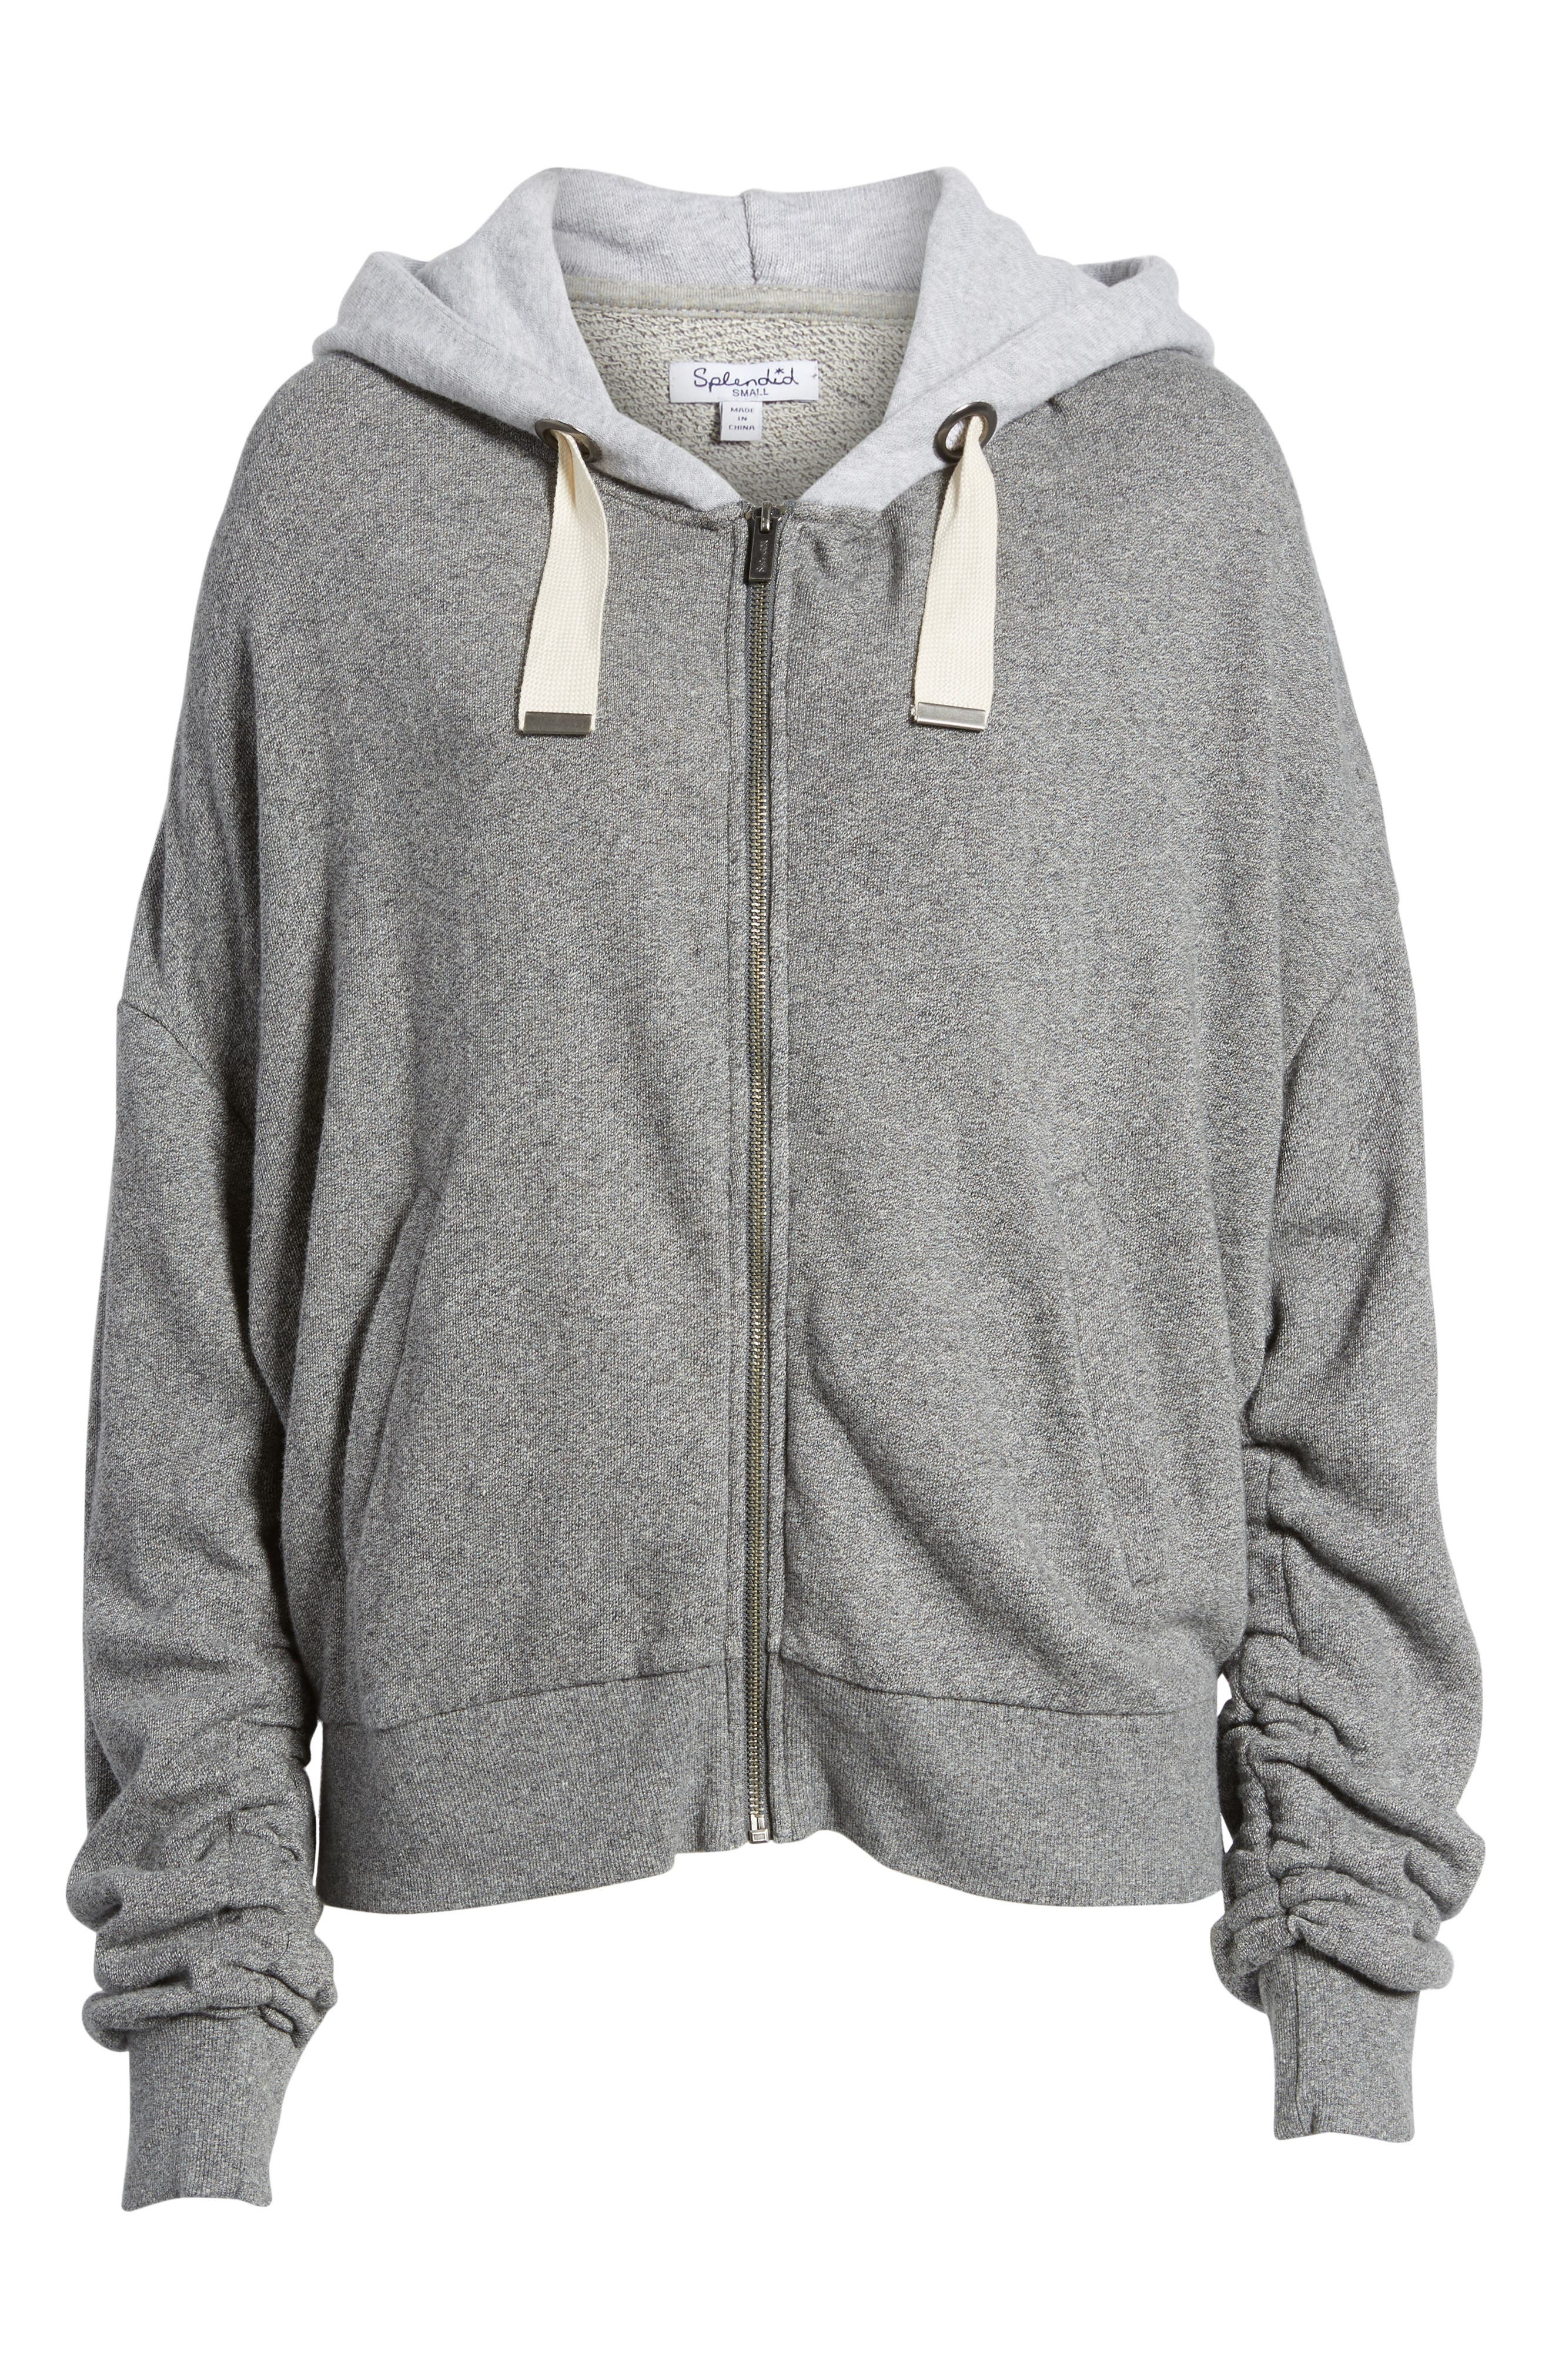 Ruched Sleeve Hoodie,                             Alternate thumbnail 6, color,                             HEATHER GREY